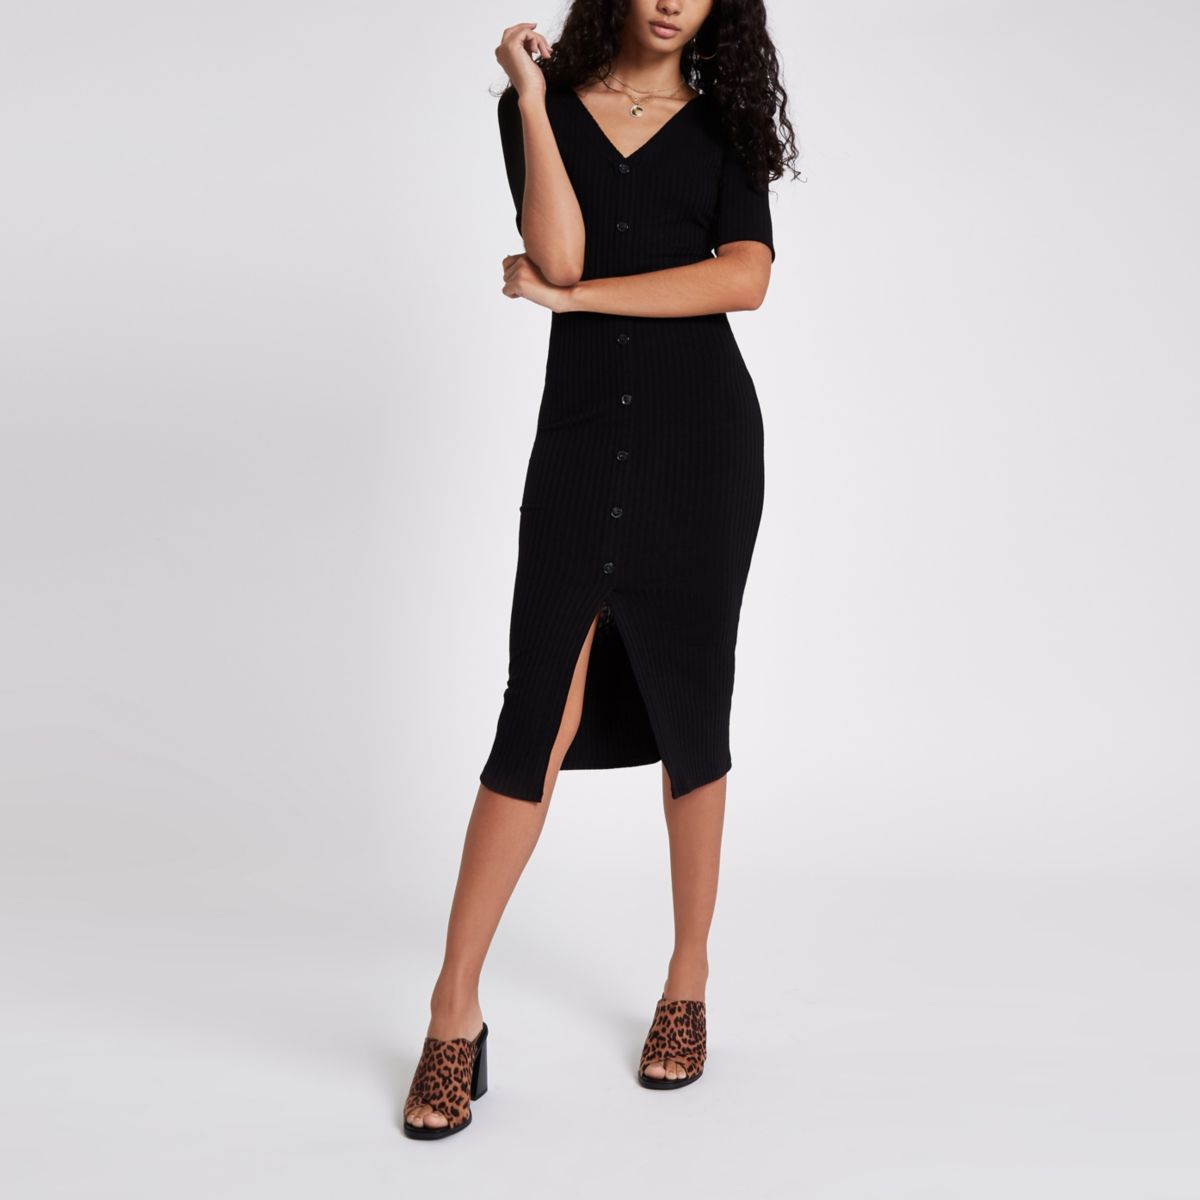 Black rib button midi bodycon dress